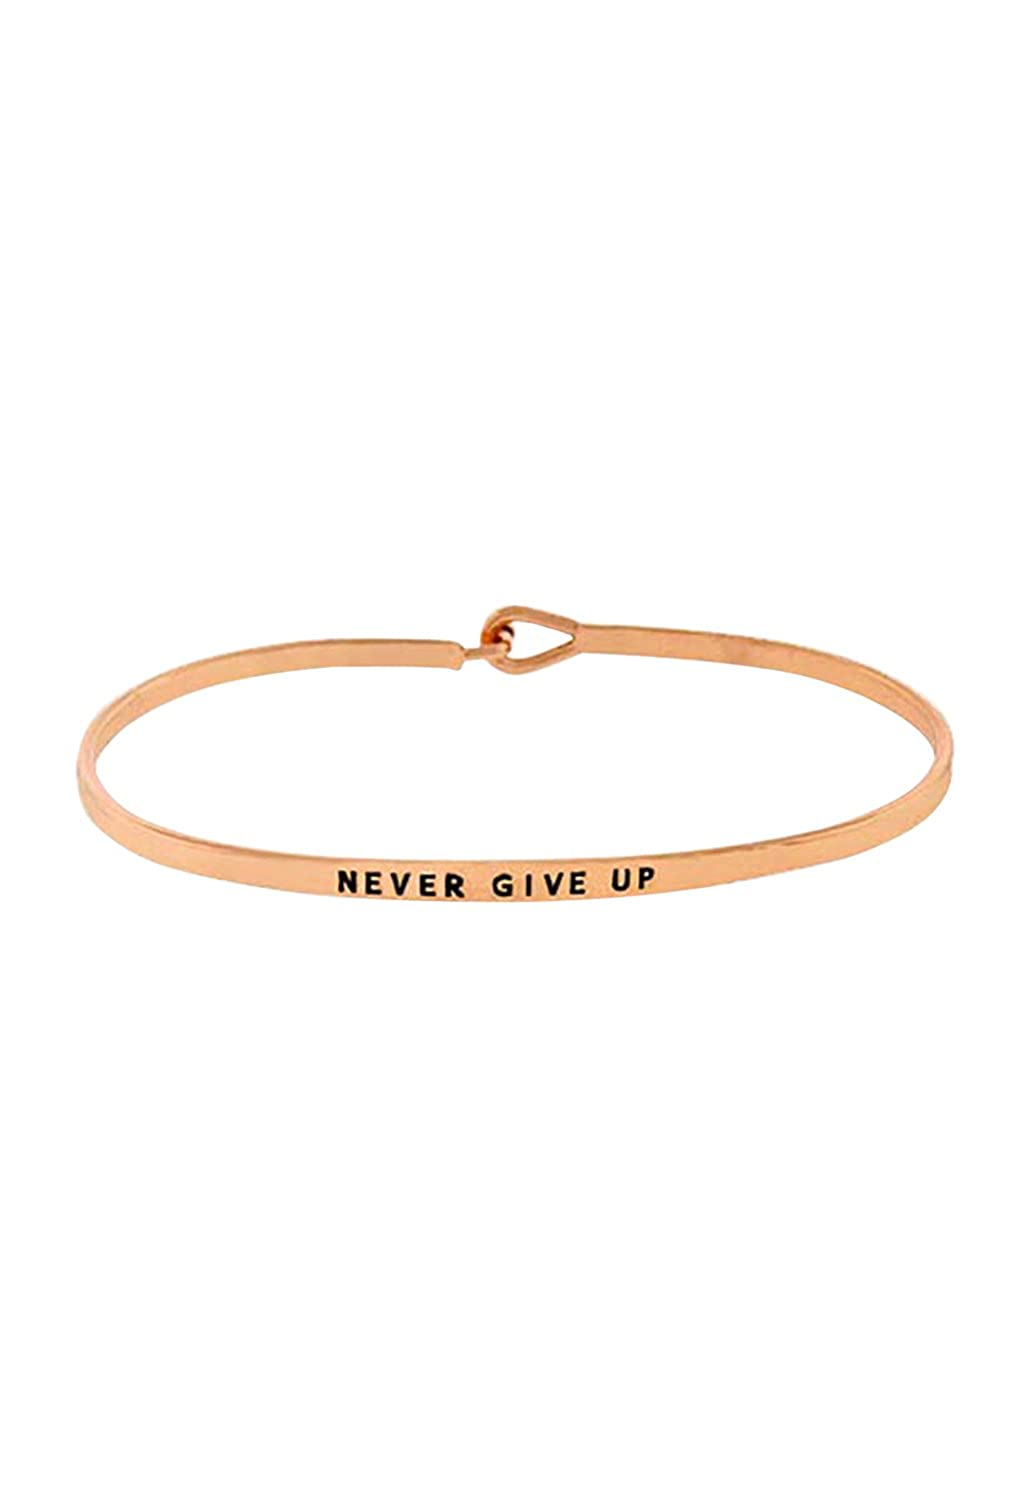 Rosemarie Collections Womens Inspirational Thin Metal Bangle Bracelet Never Give Up